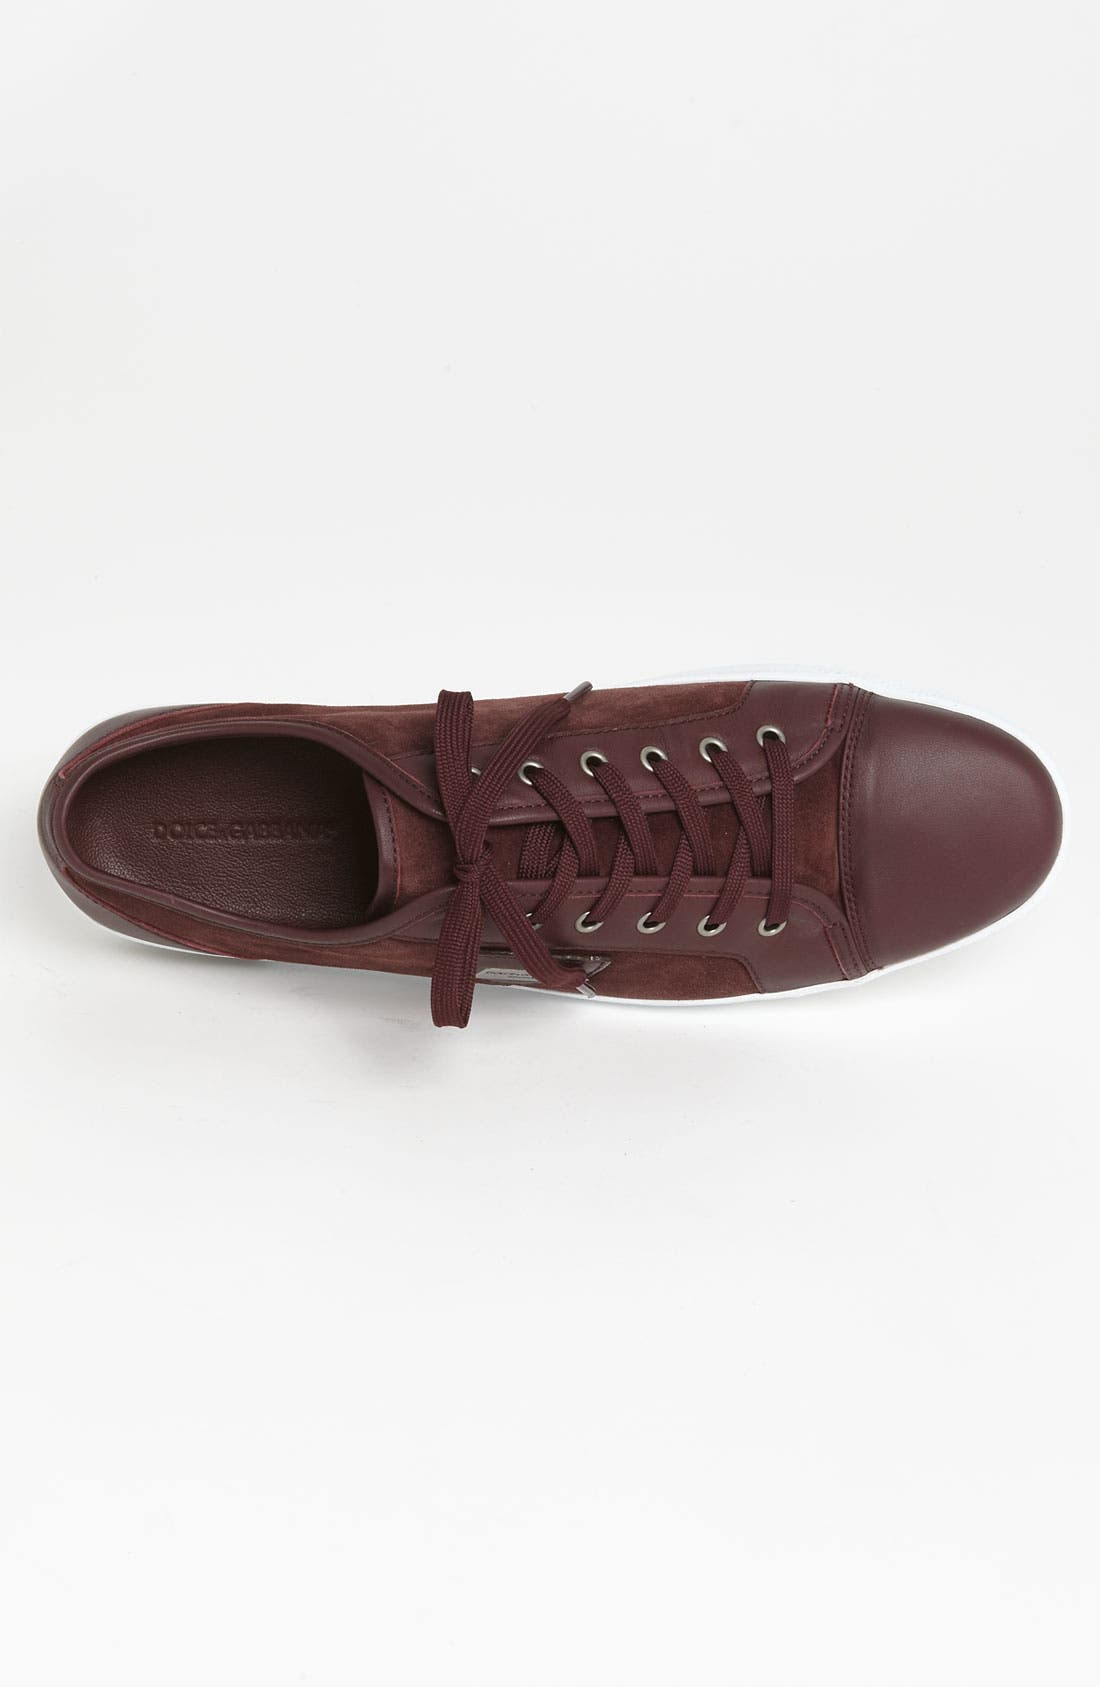 Suede Sneaker,                             Alternate thumbnail 3, color,                             Red Suede